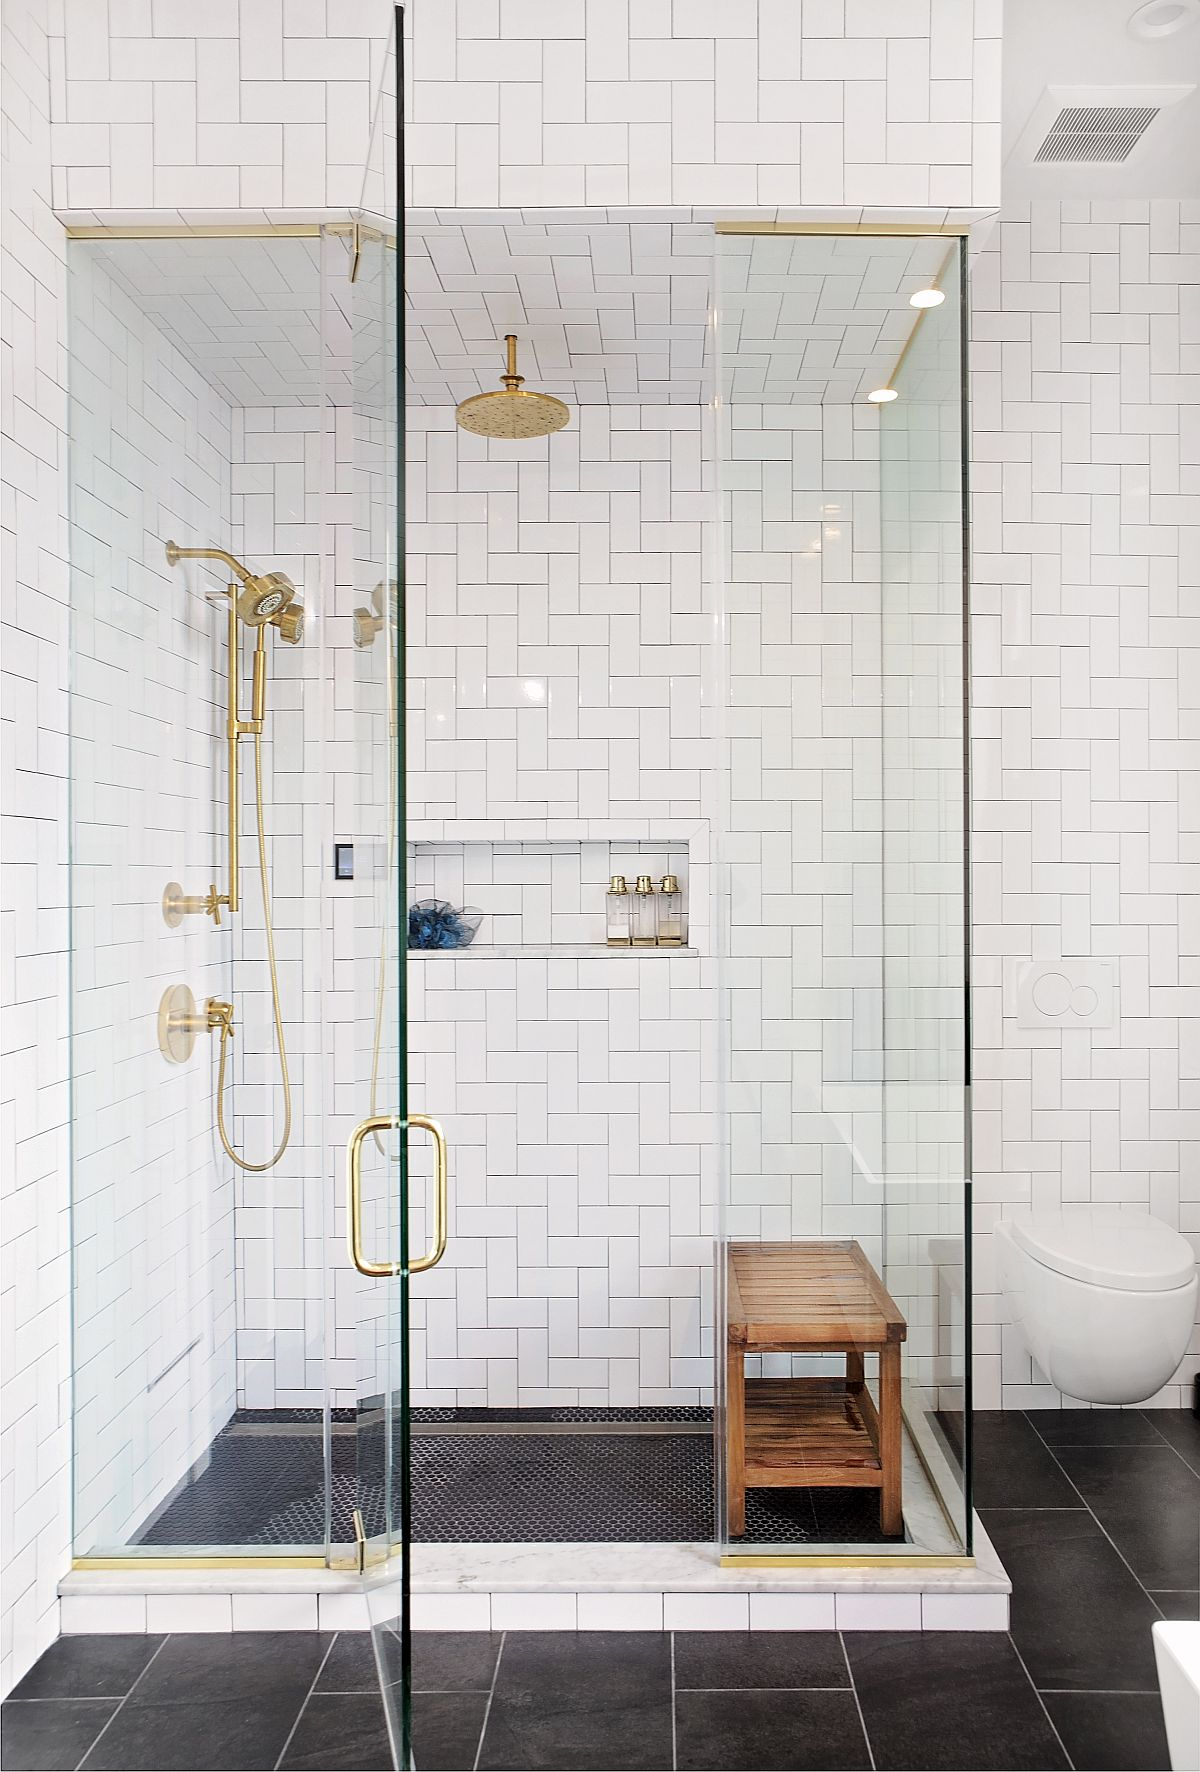 Glass shower area for the bathroom in white with a modern appeal